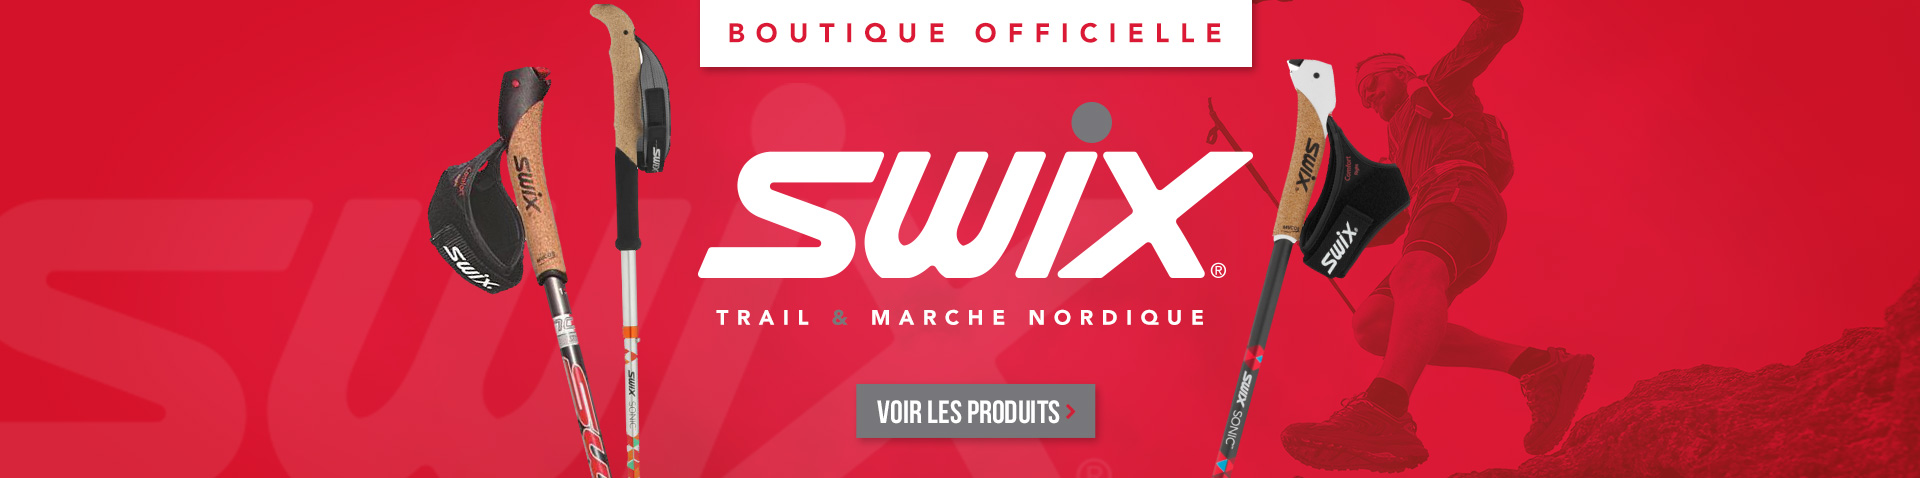 Boutique Officielle Swix